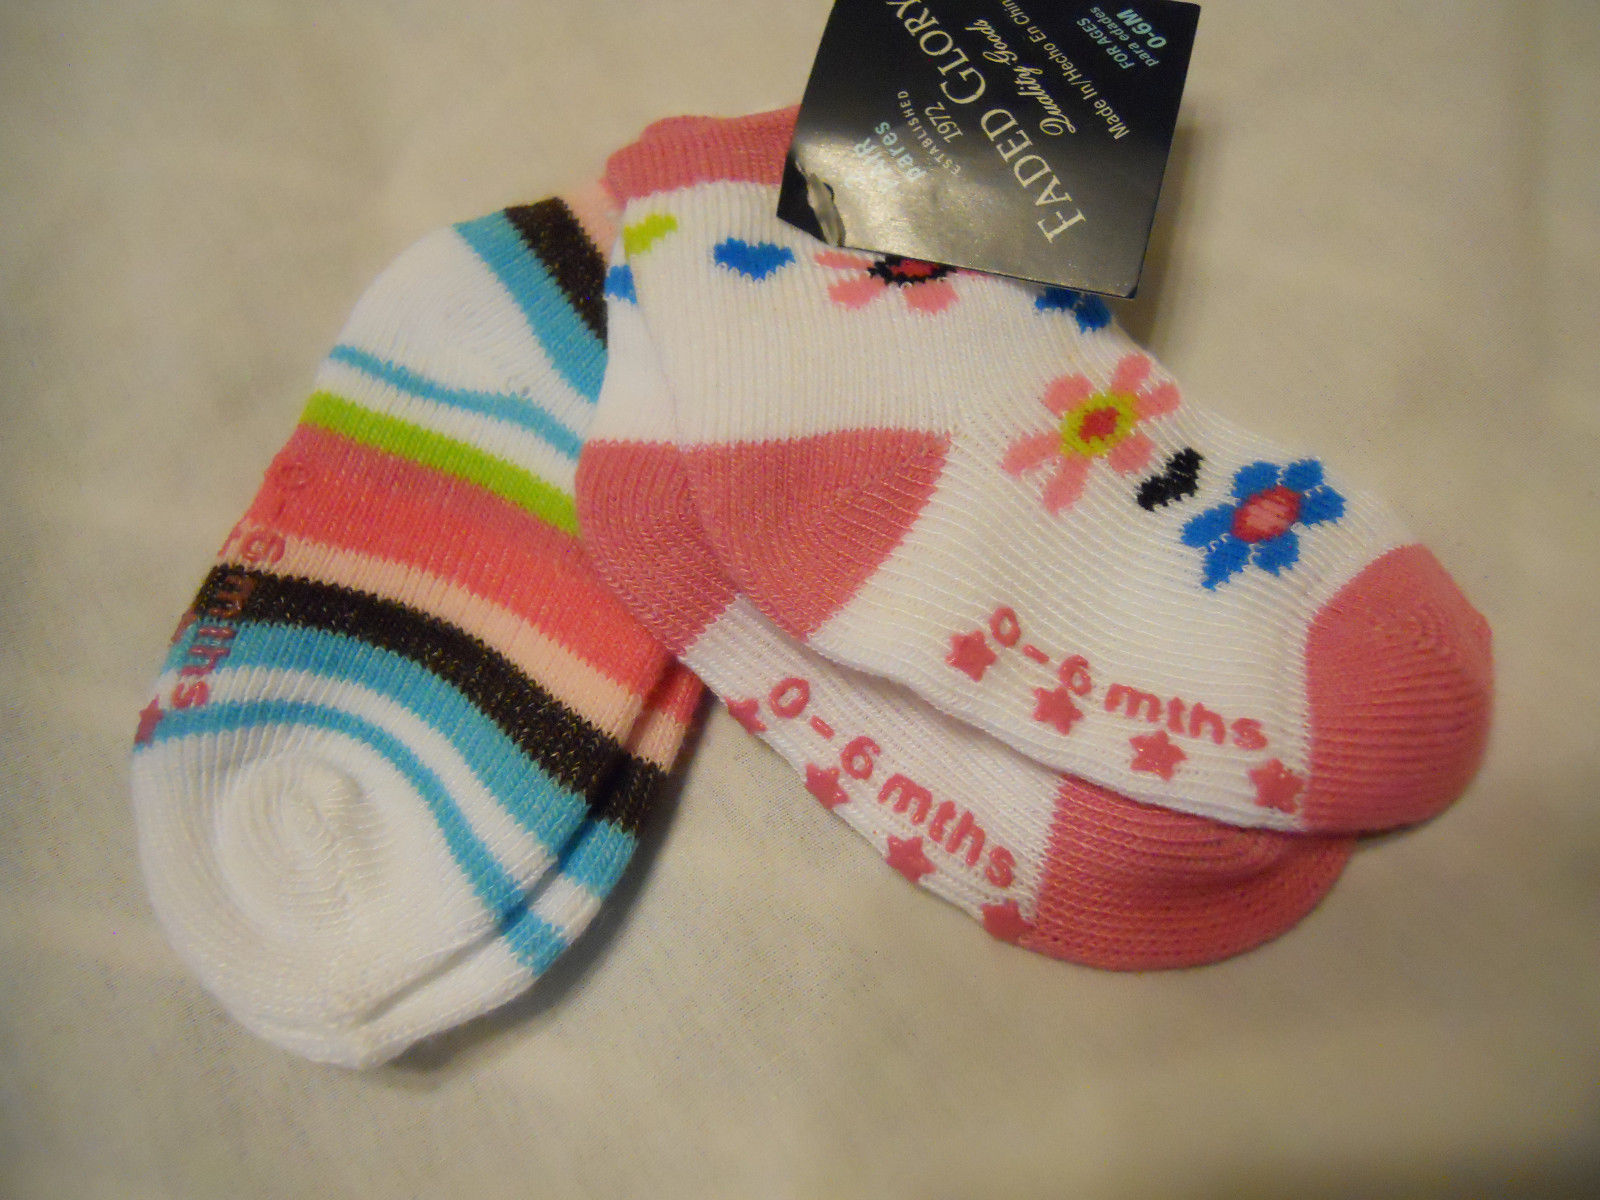 New Circo Kids Thick with grippers Socks Warm Slipper Socks 6-12 mos 2 layers